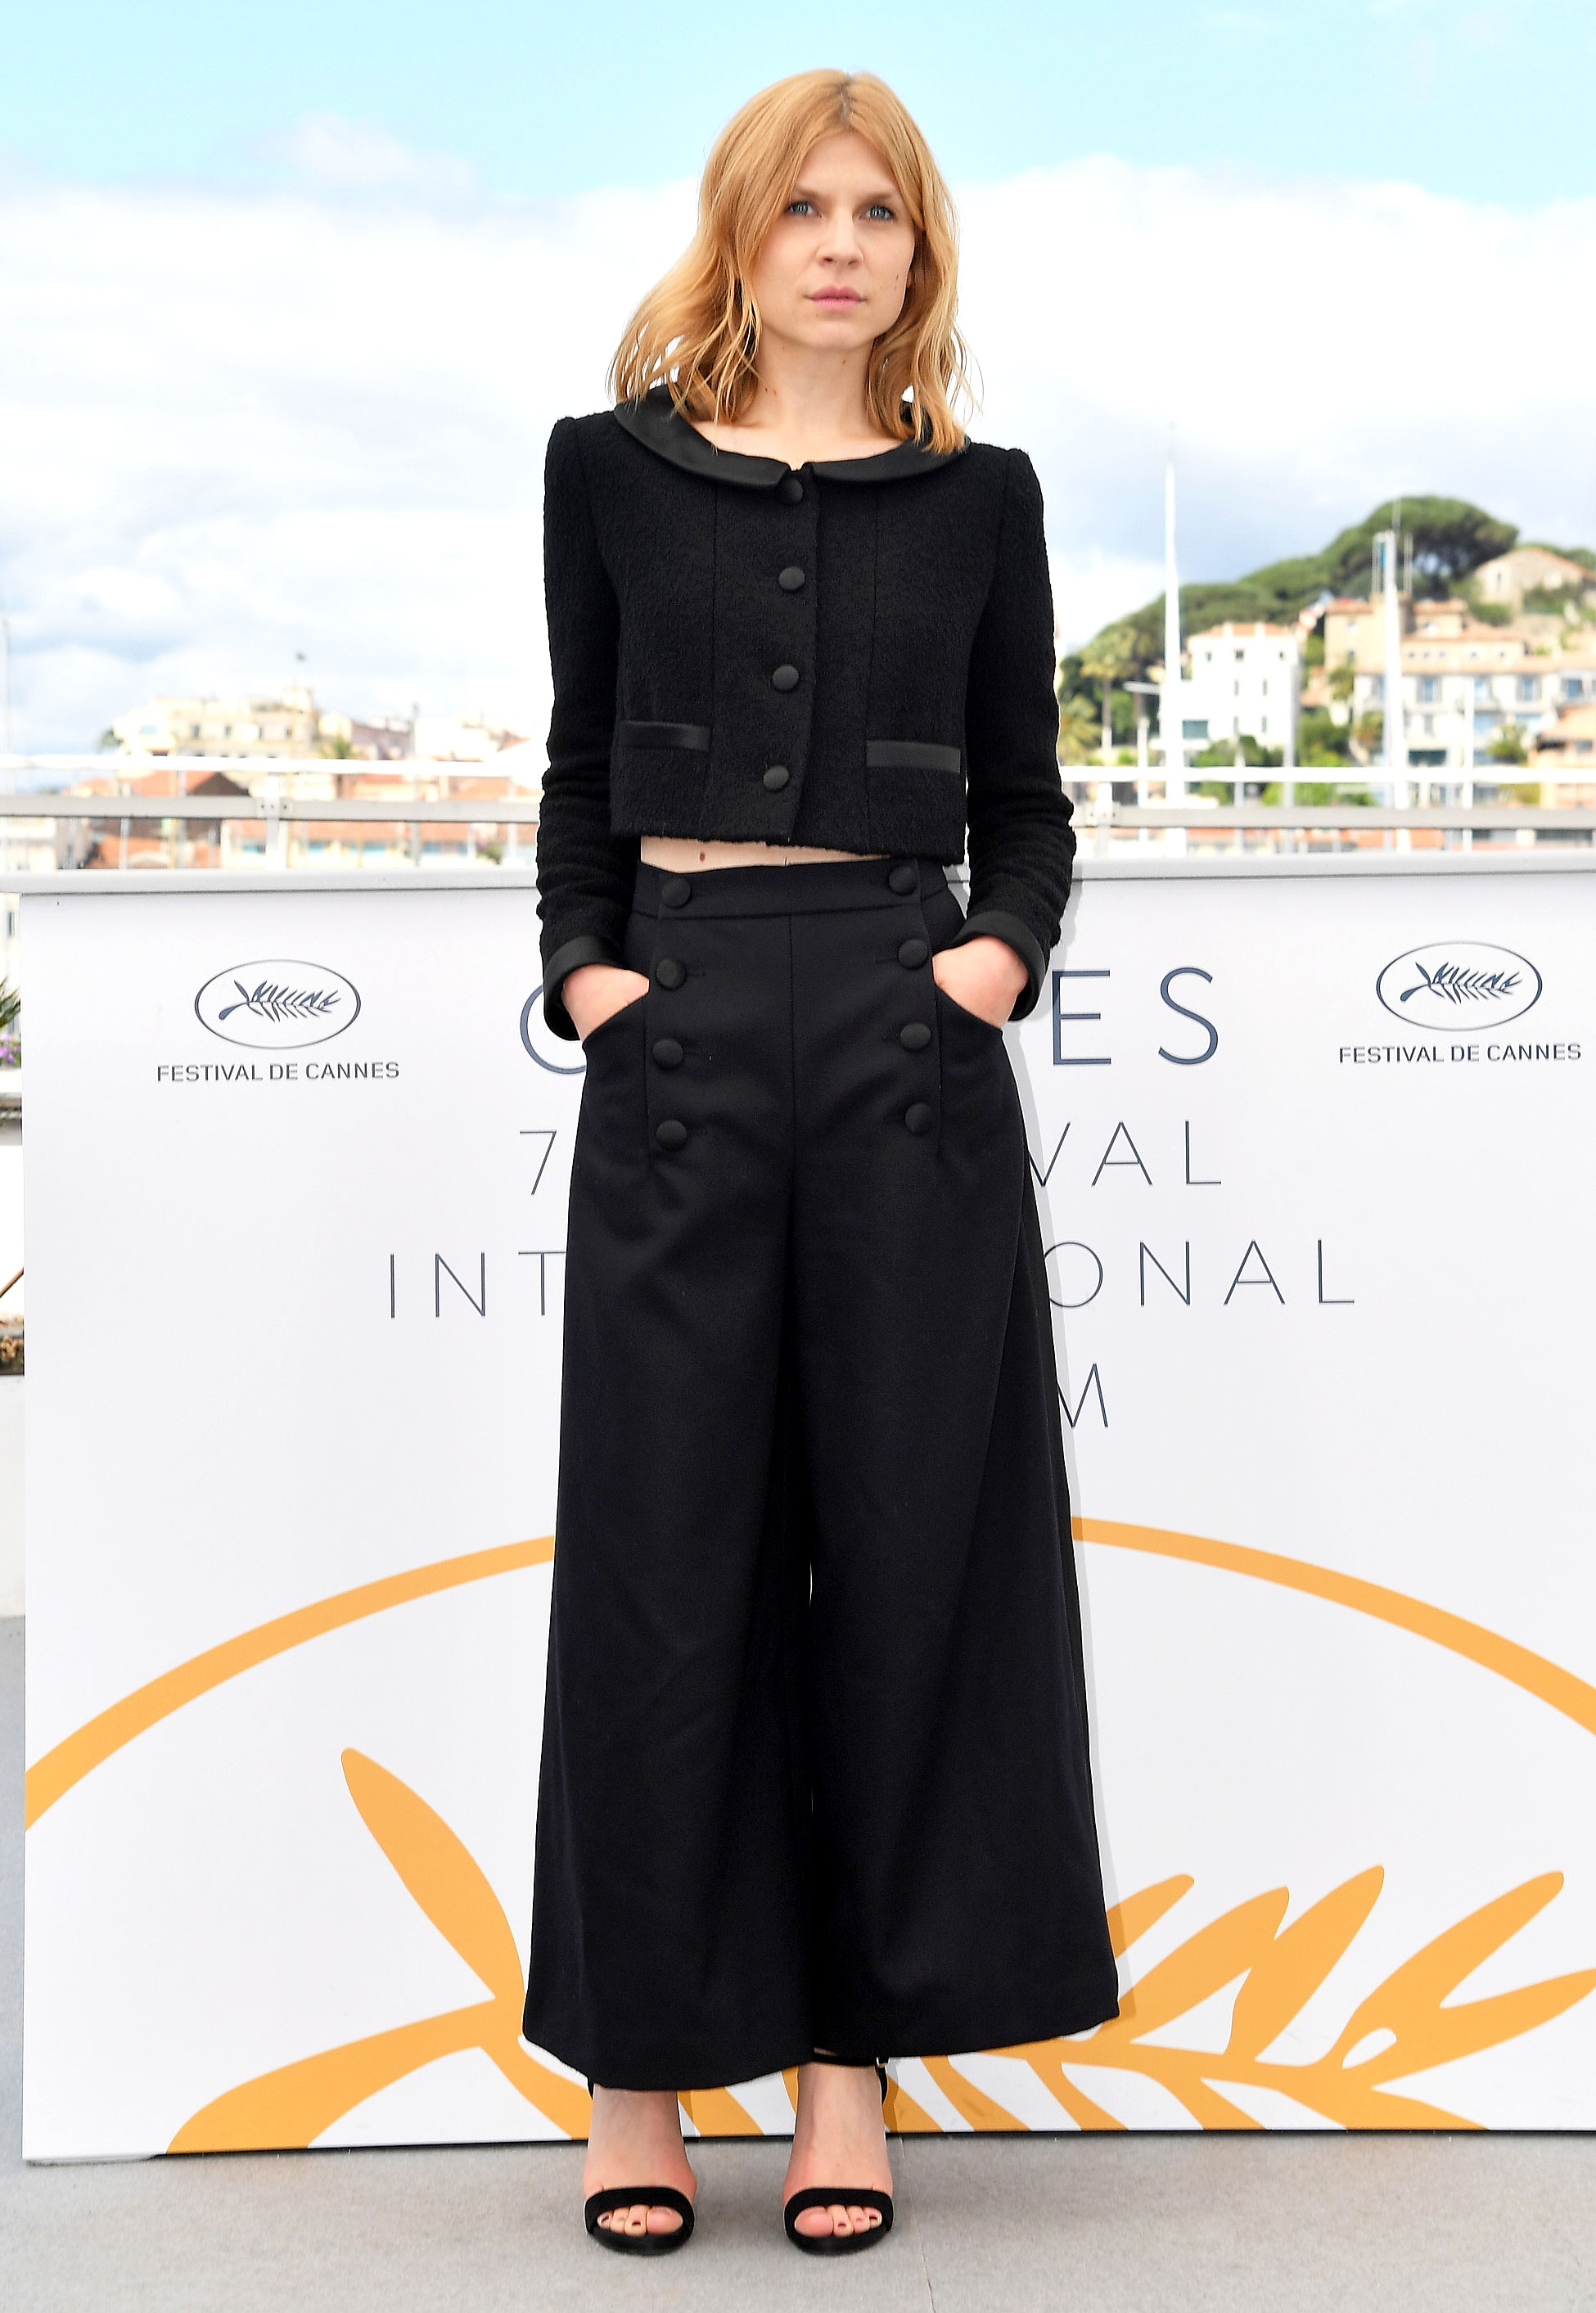 Clemence Poesy - Très chic is about the only way to describe the French actress' Chanel cropped jacket and wide leg trousers at the Talents Adami photocall on Tuesday, May 15.